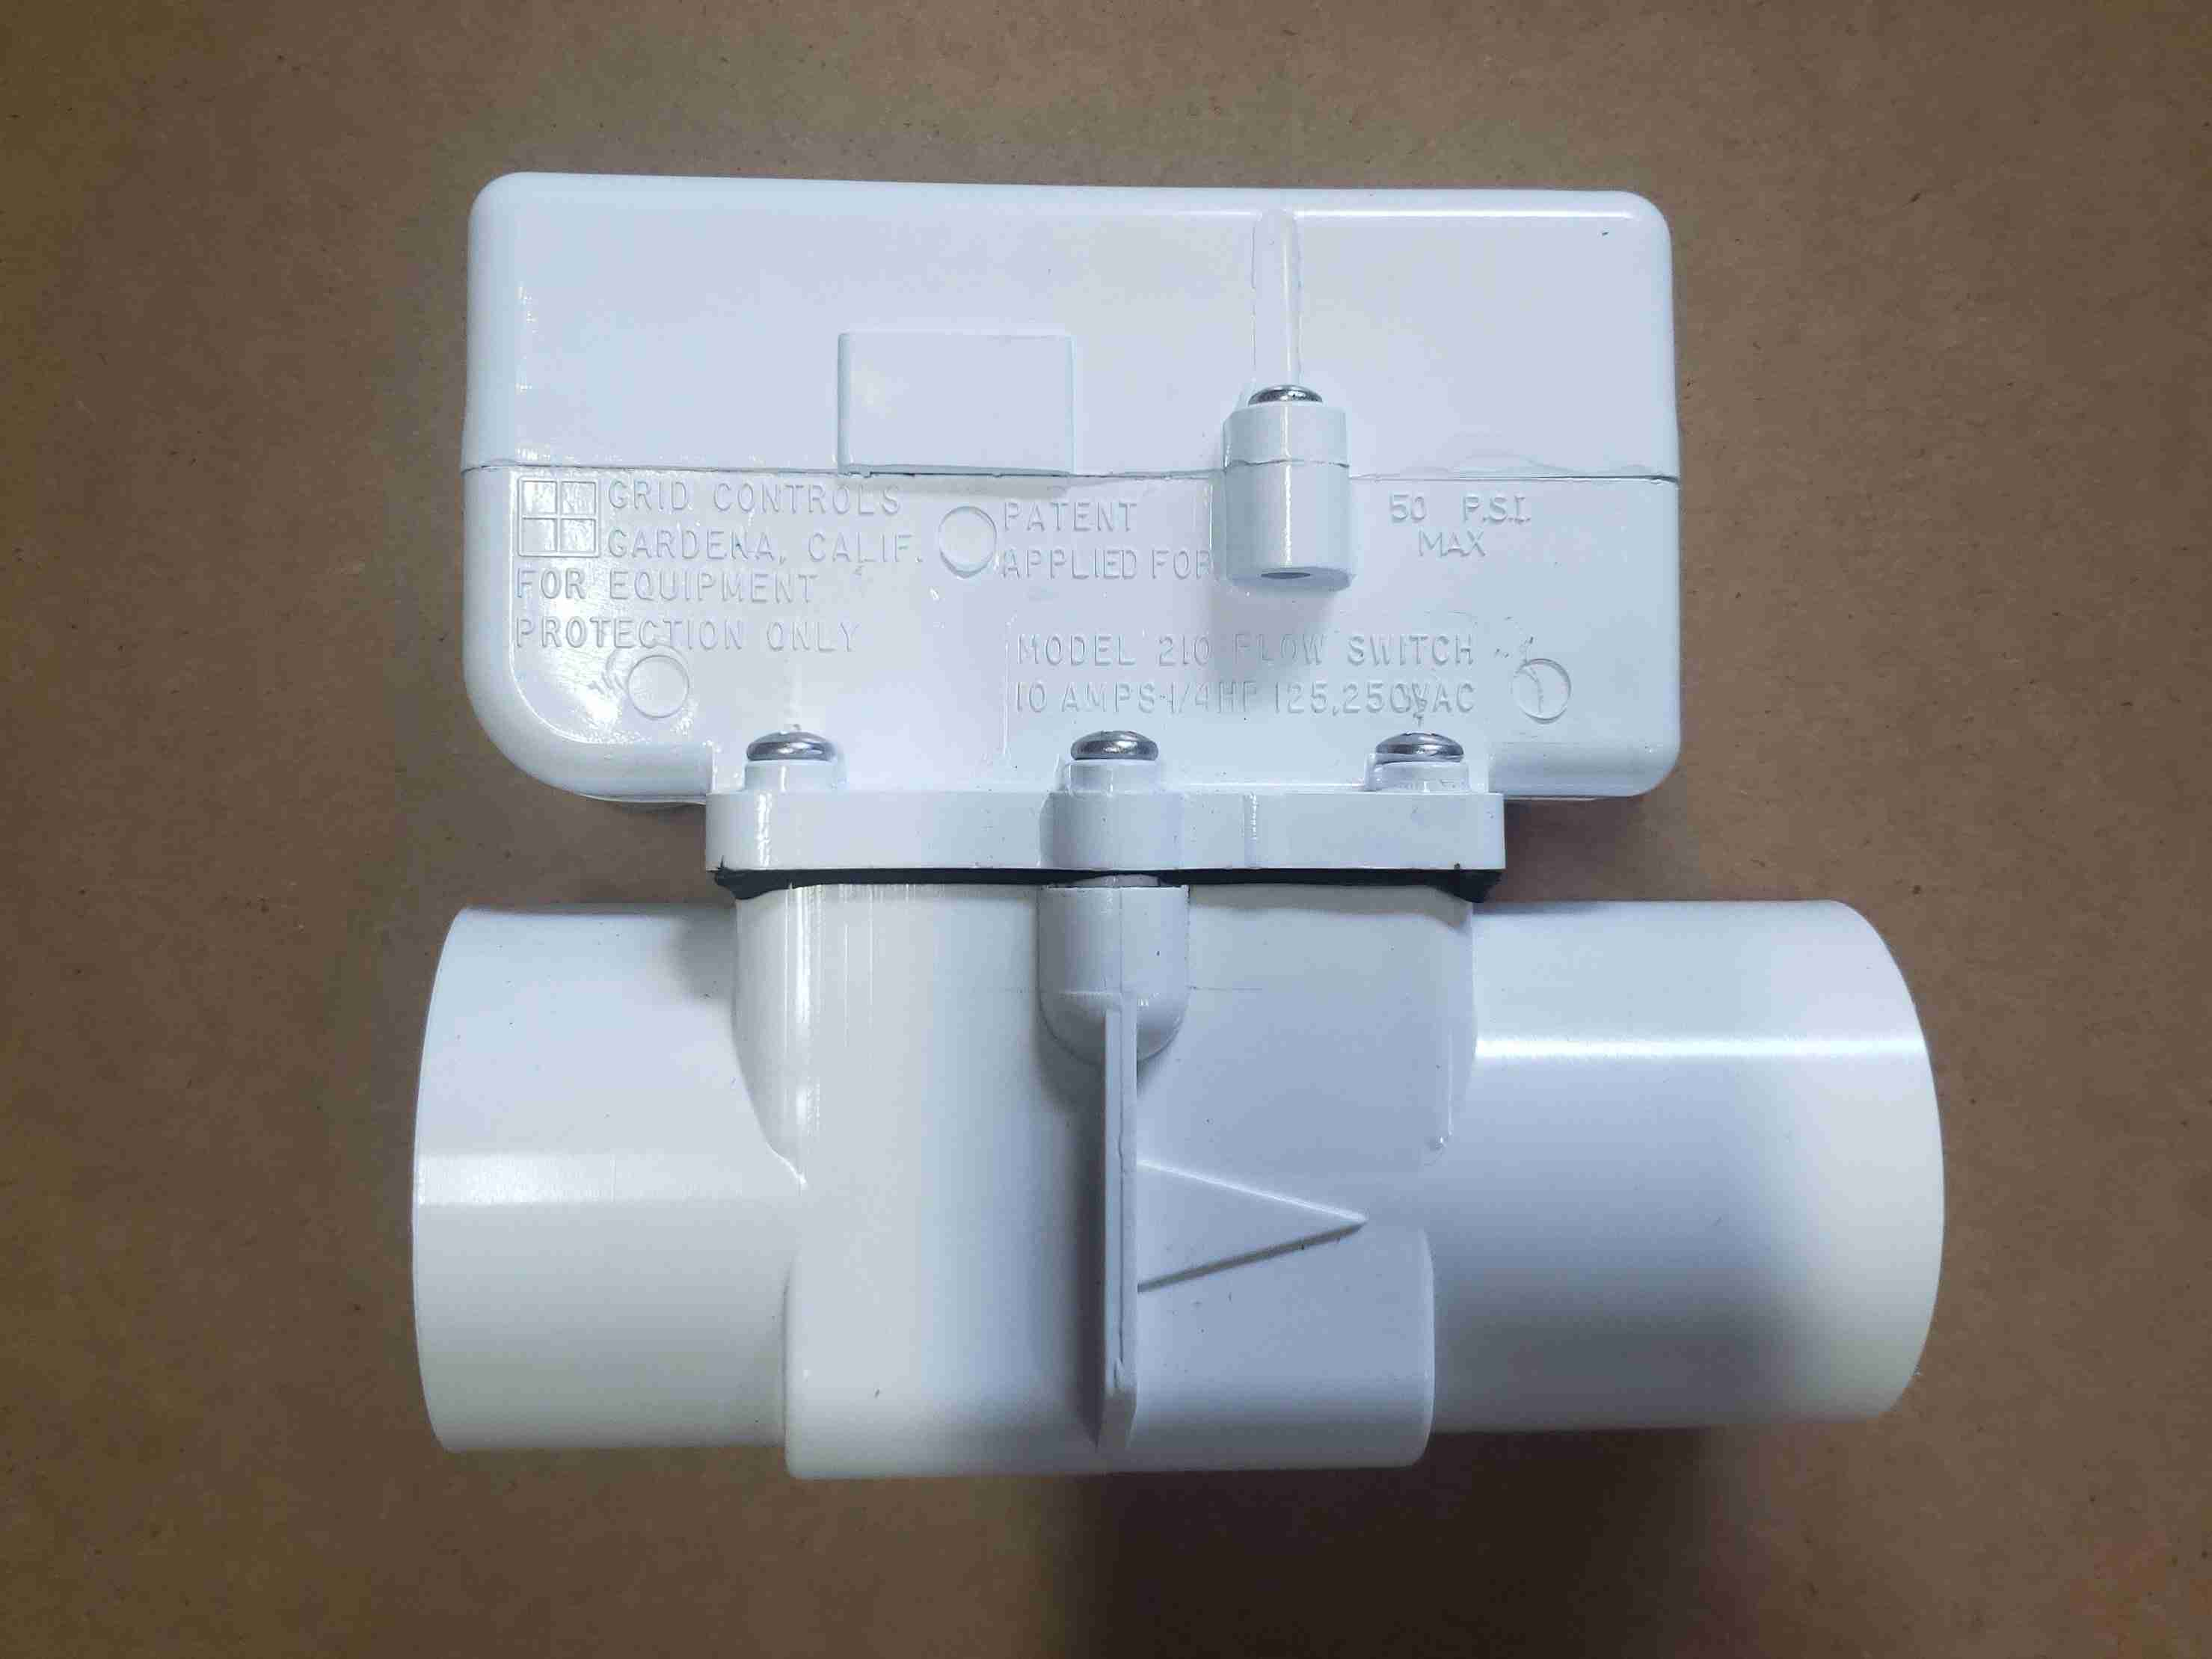 Side view of Grid Controls M210 External Flow Switch for Heat Pump